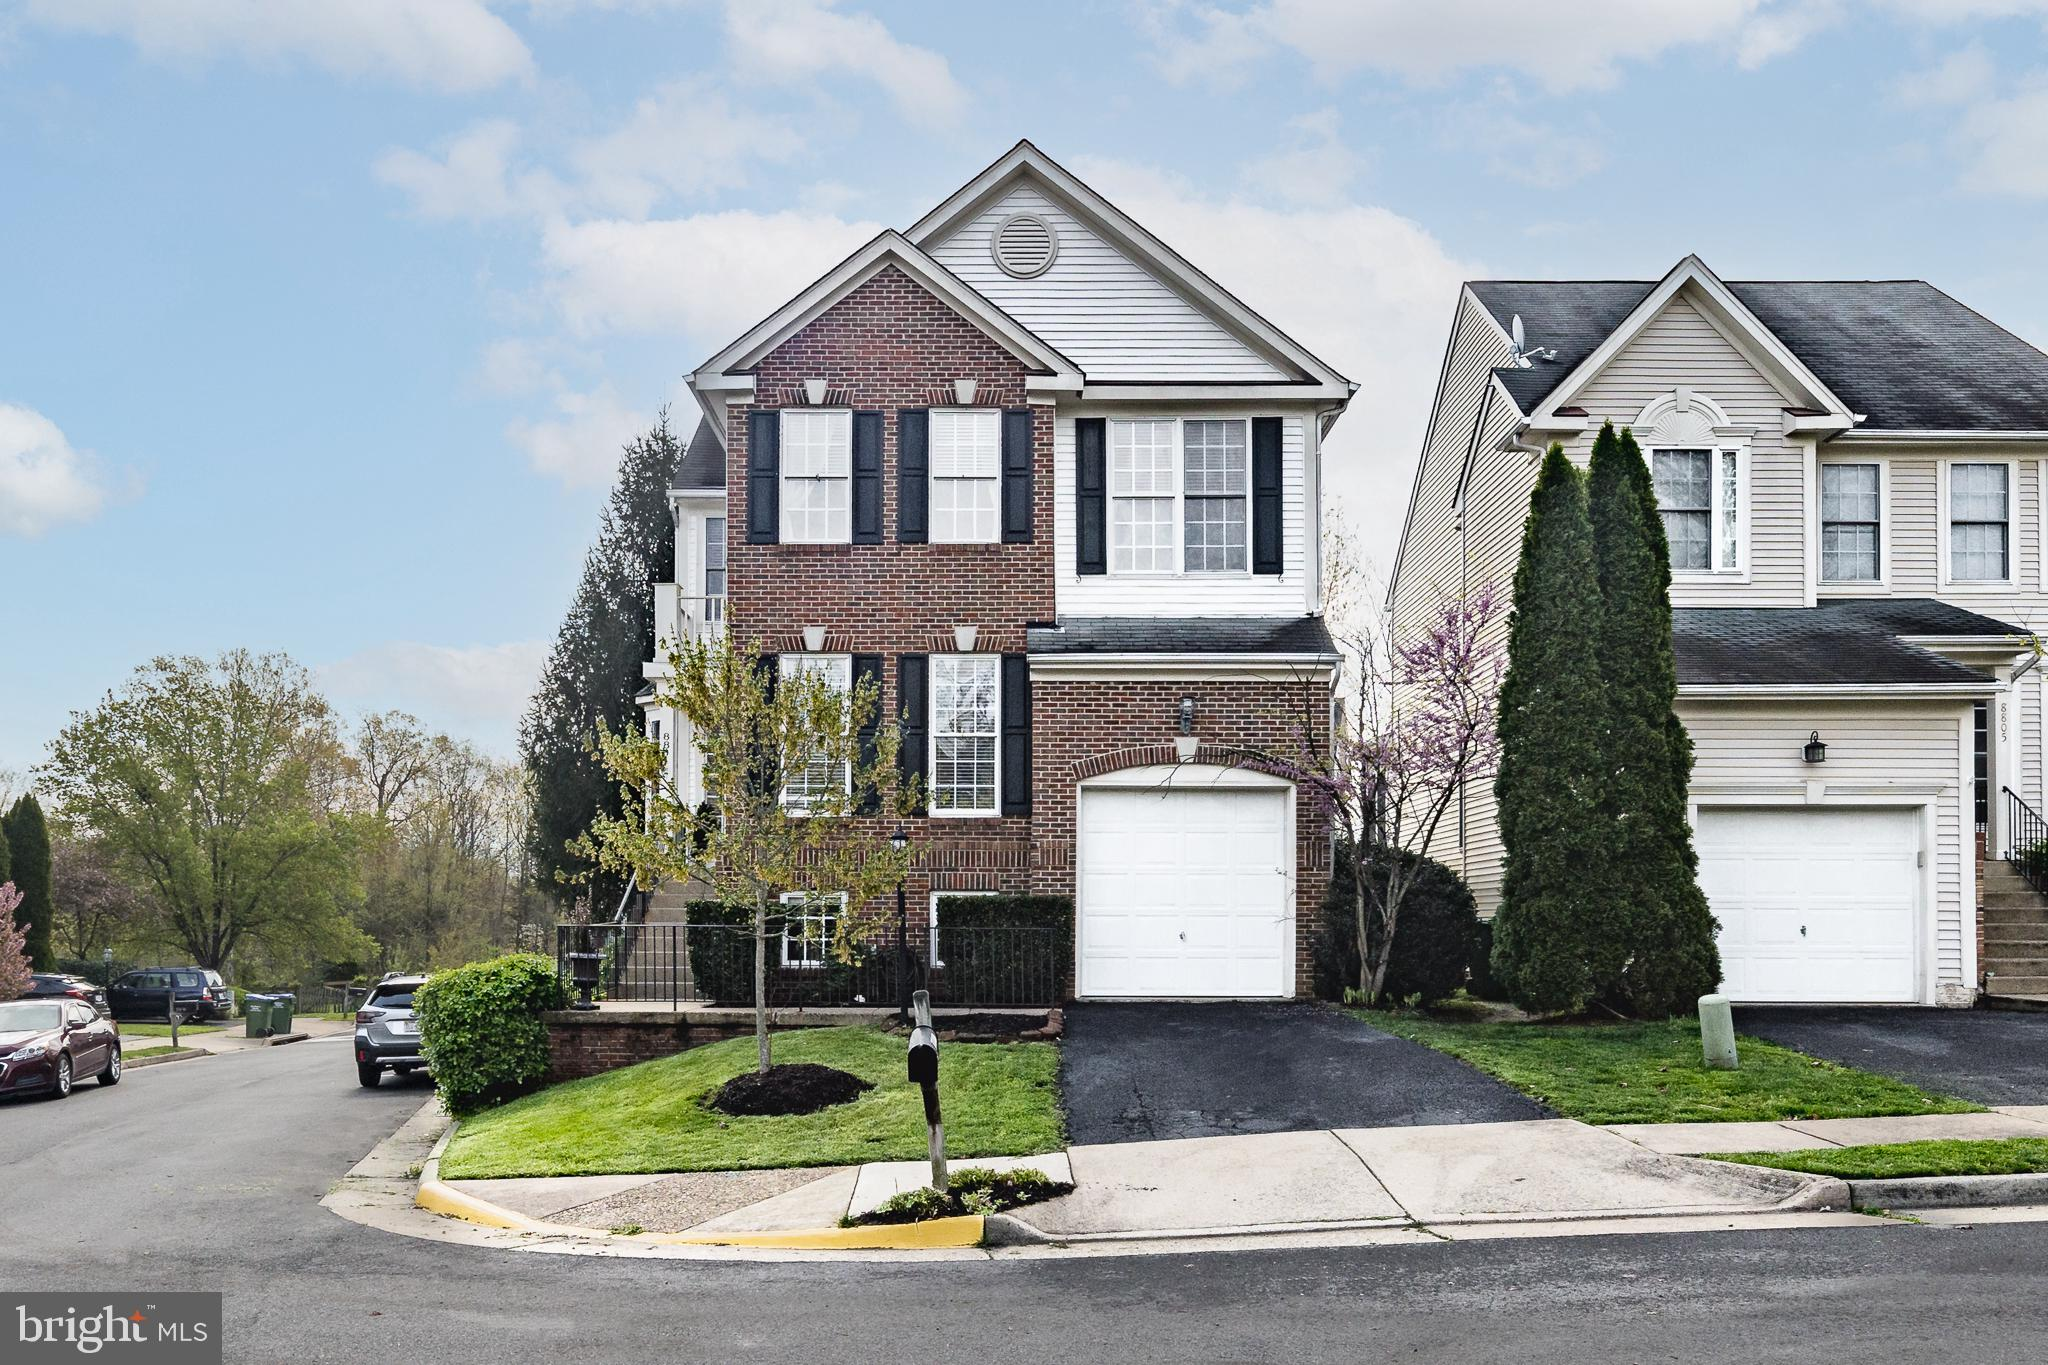 Gorgeous 5-bedroom brick front home on rare corner lot in desirable Kingsbrooke community!  Home fea